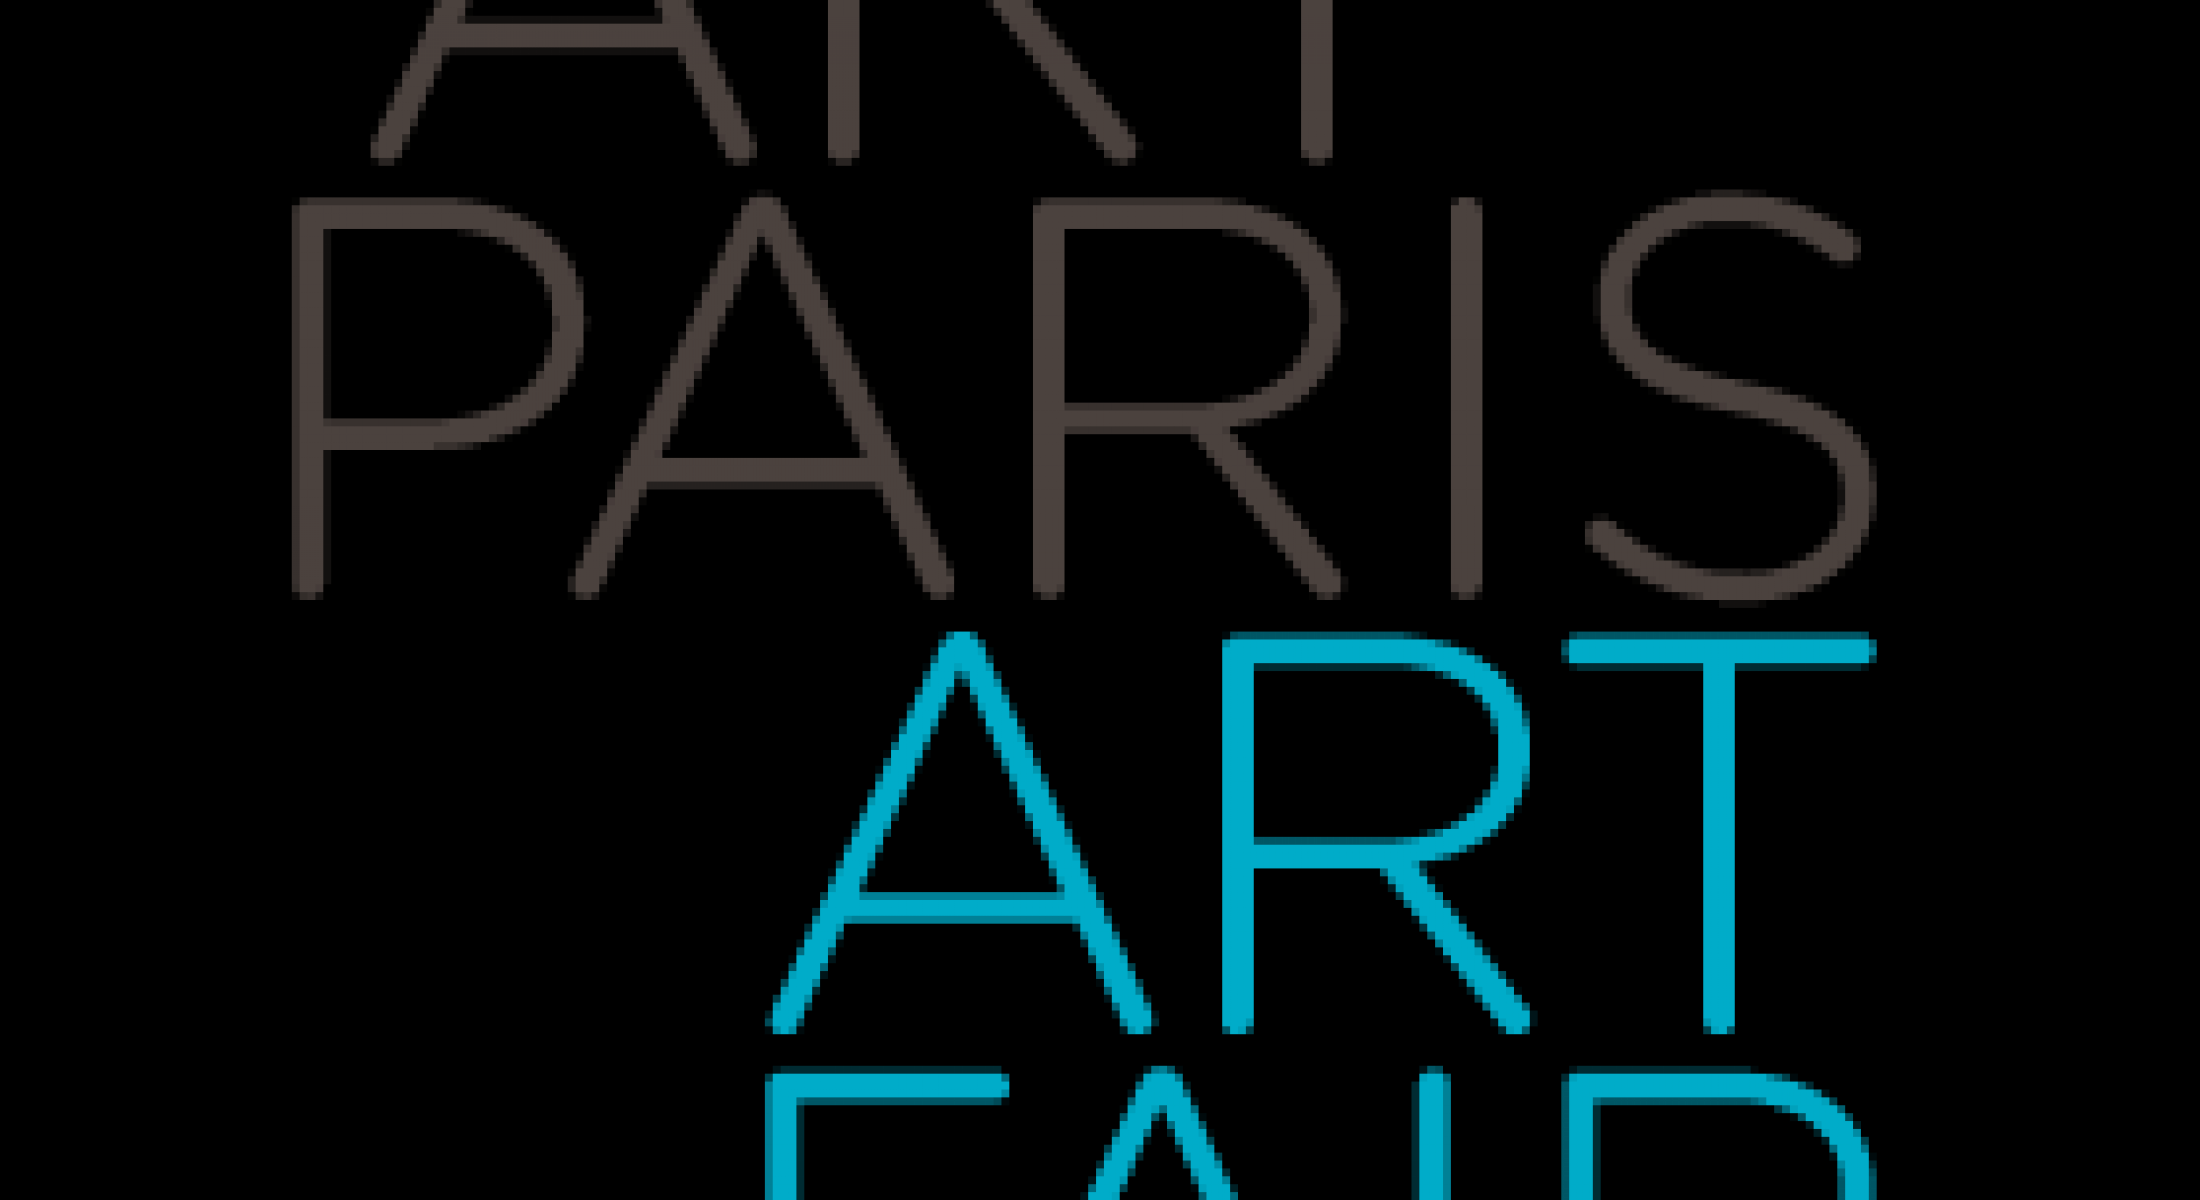 Pierre Leguillon, 見習う, Parler aux yeux